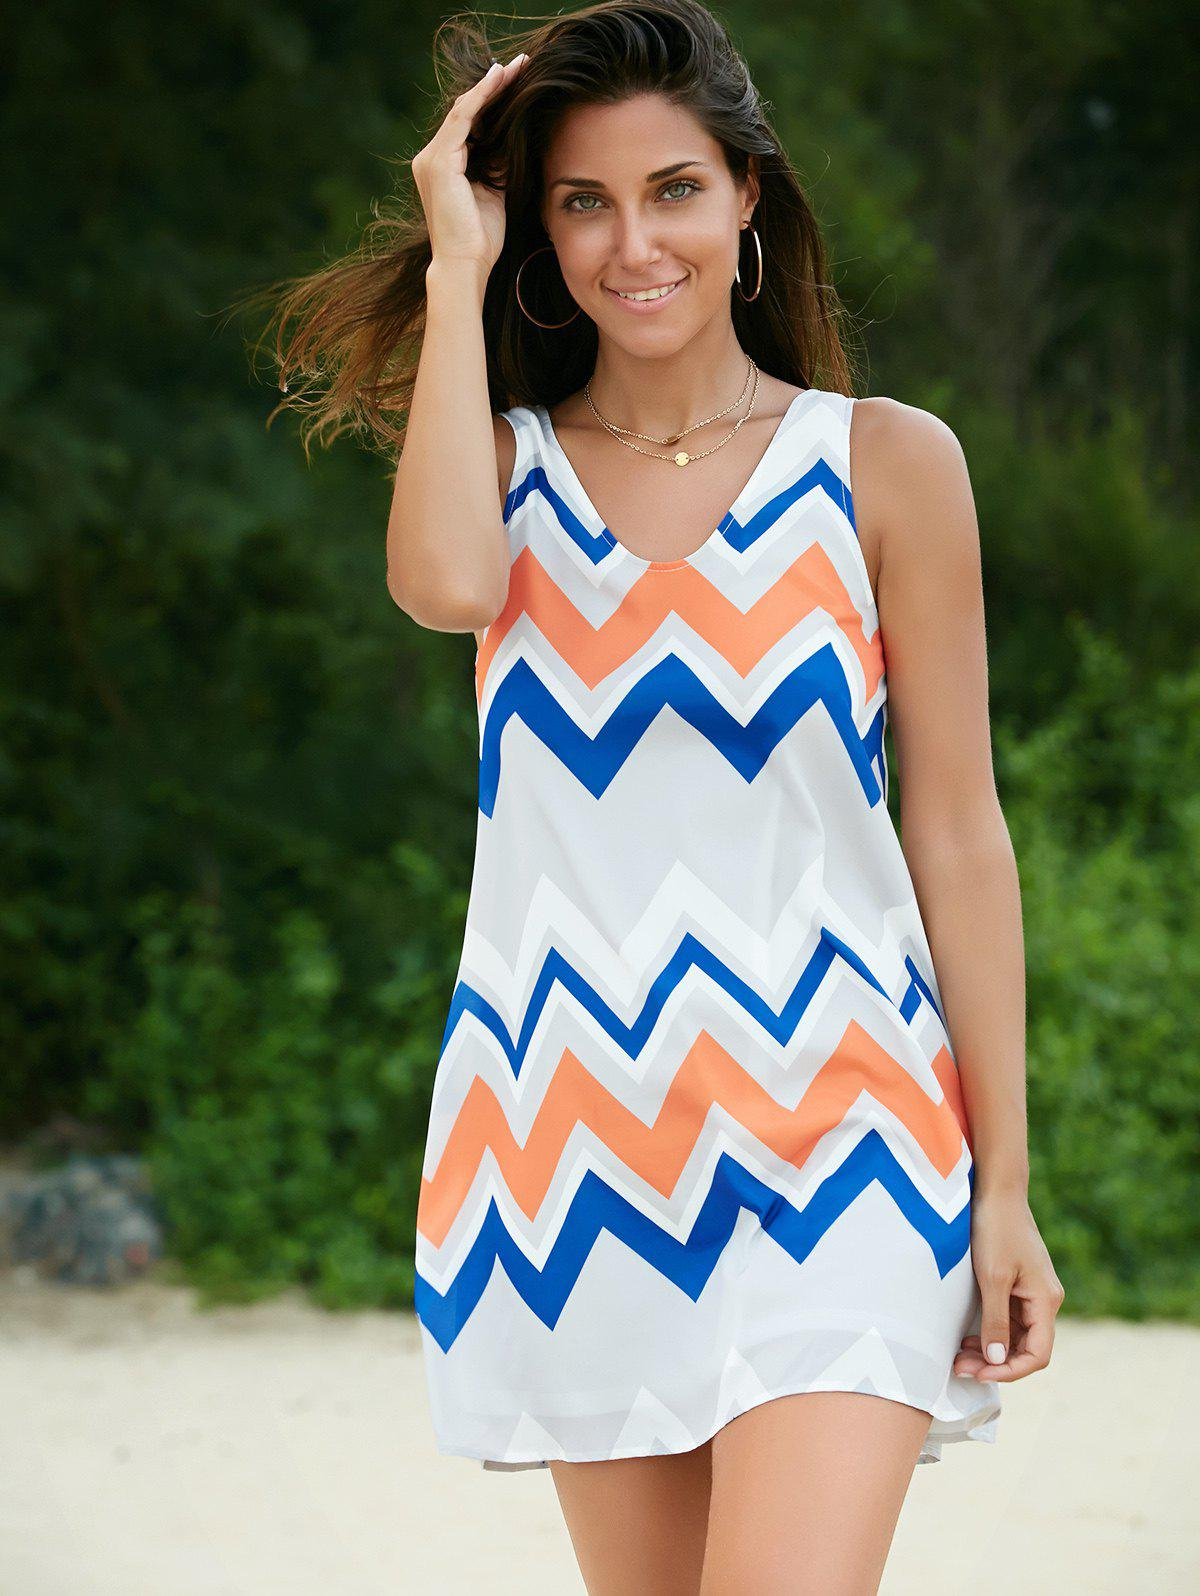 Trendy Sleeveless Scoop Neck Zig Zag Print Dress For Women - COLORMIX XL